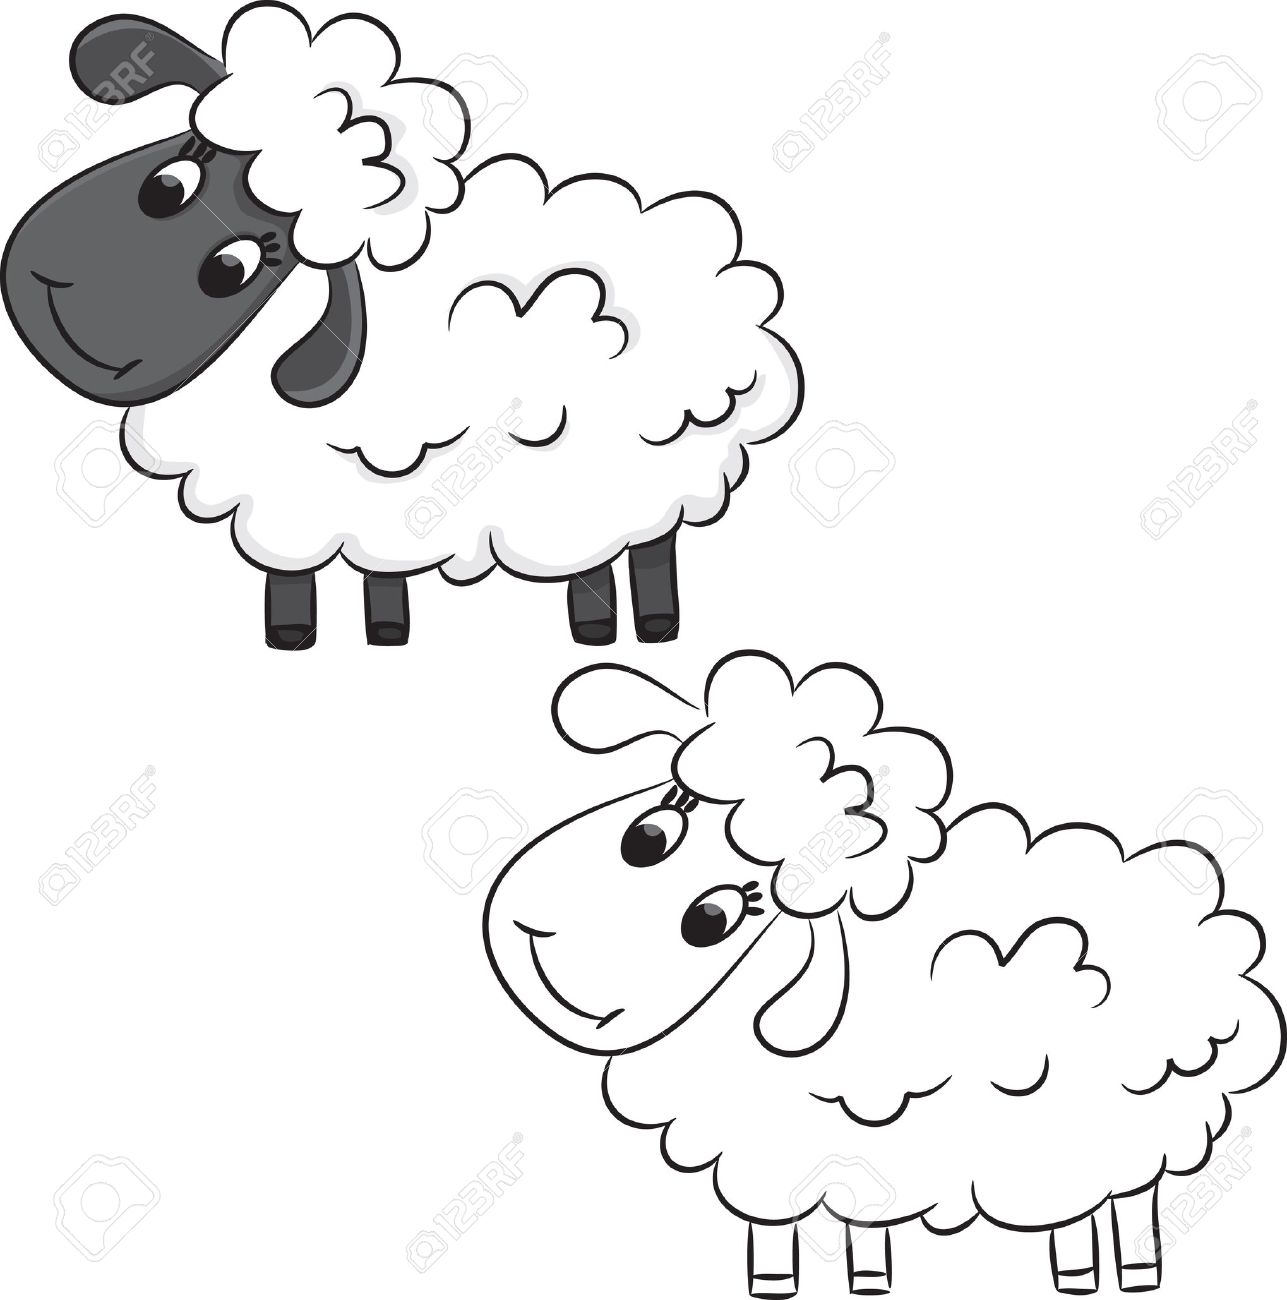 Cartoon Sheep. Coloring Book. Royalty Free Cliparts, Vectors, And ...